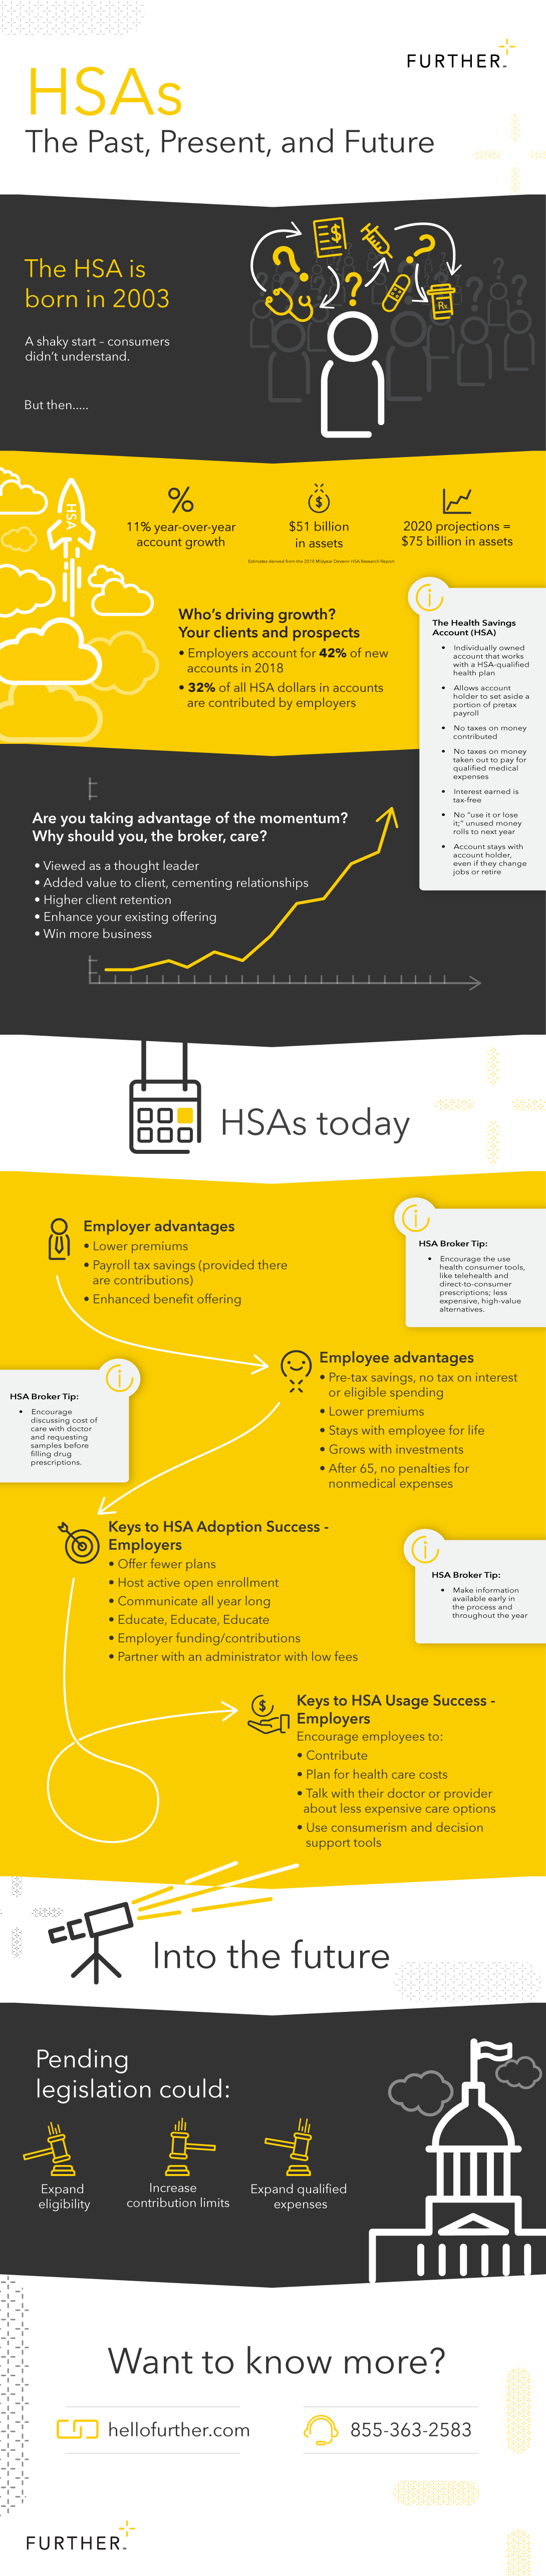 HSAs past present future infographic